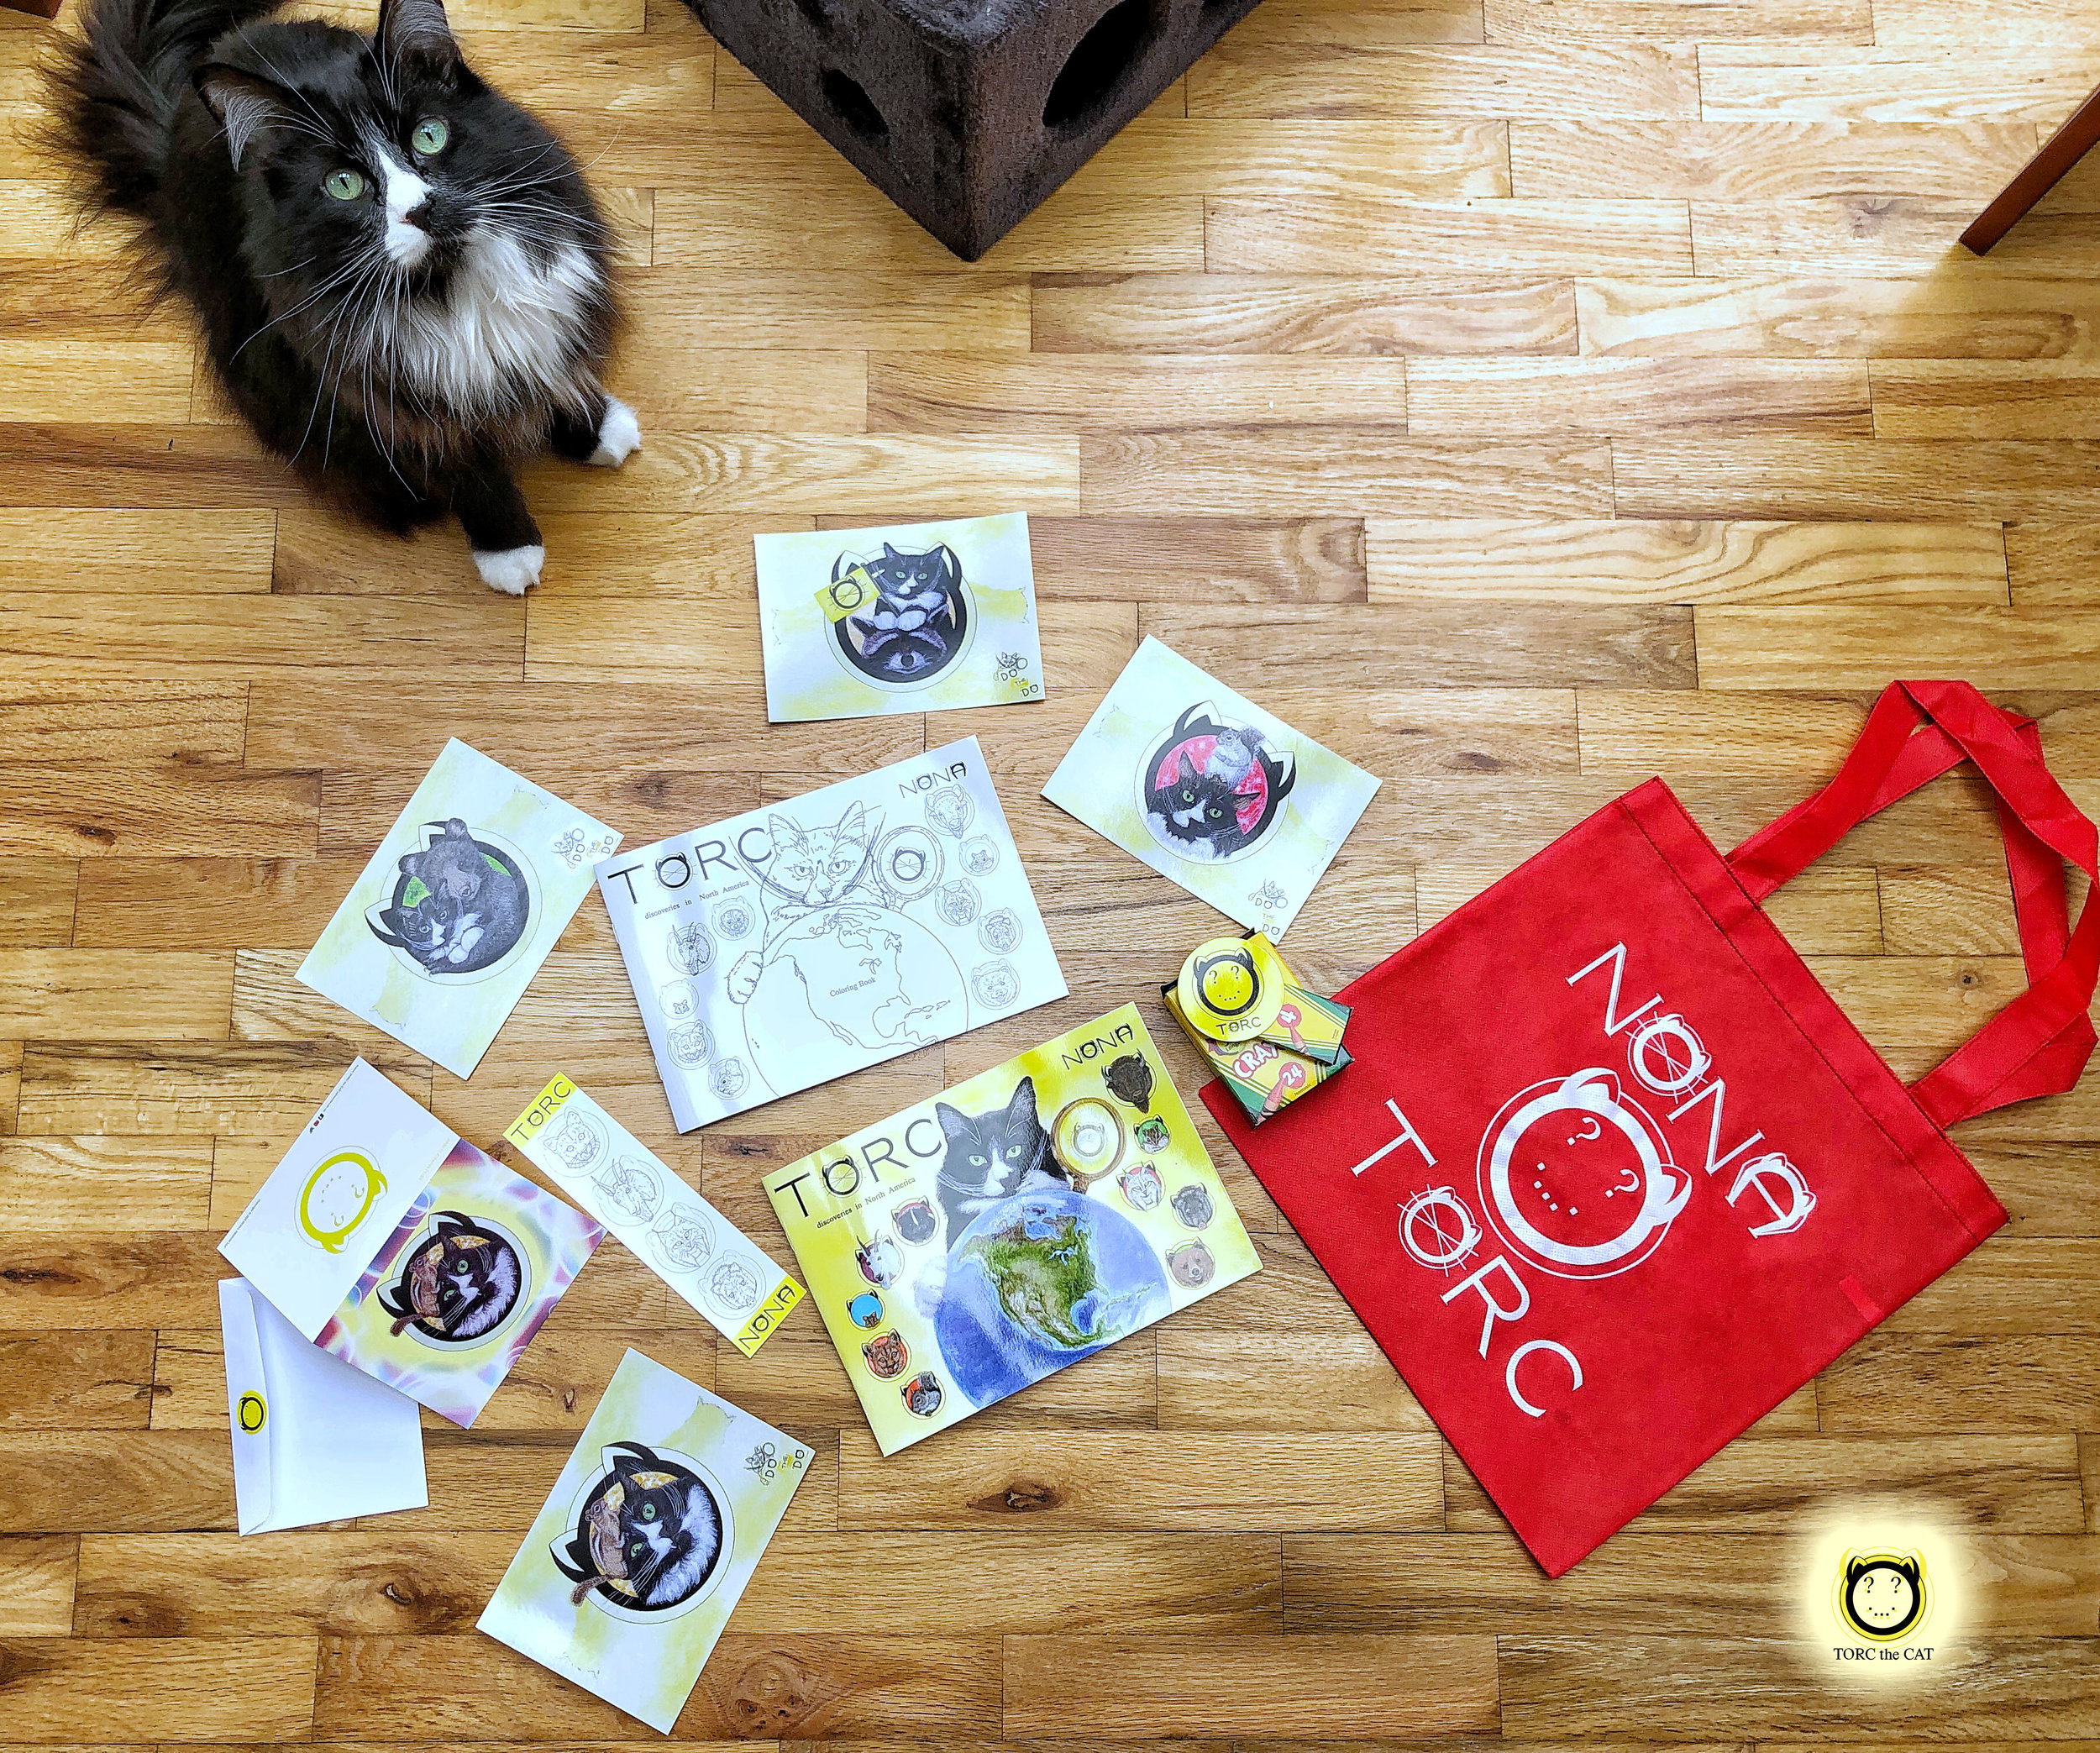 Because Christmas is a struggle for many families, TORC the CAT prepared more than 400 gifts to kids in need.